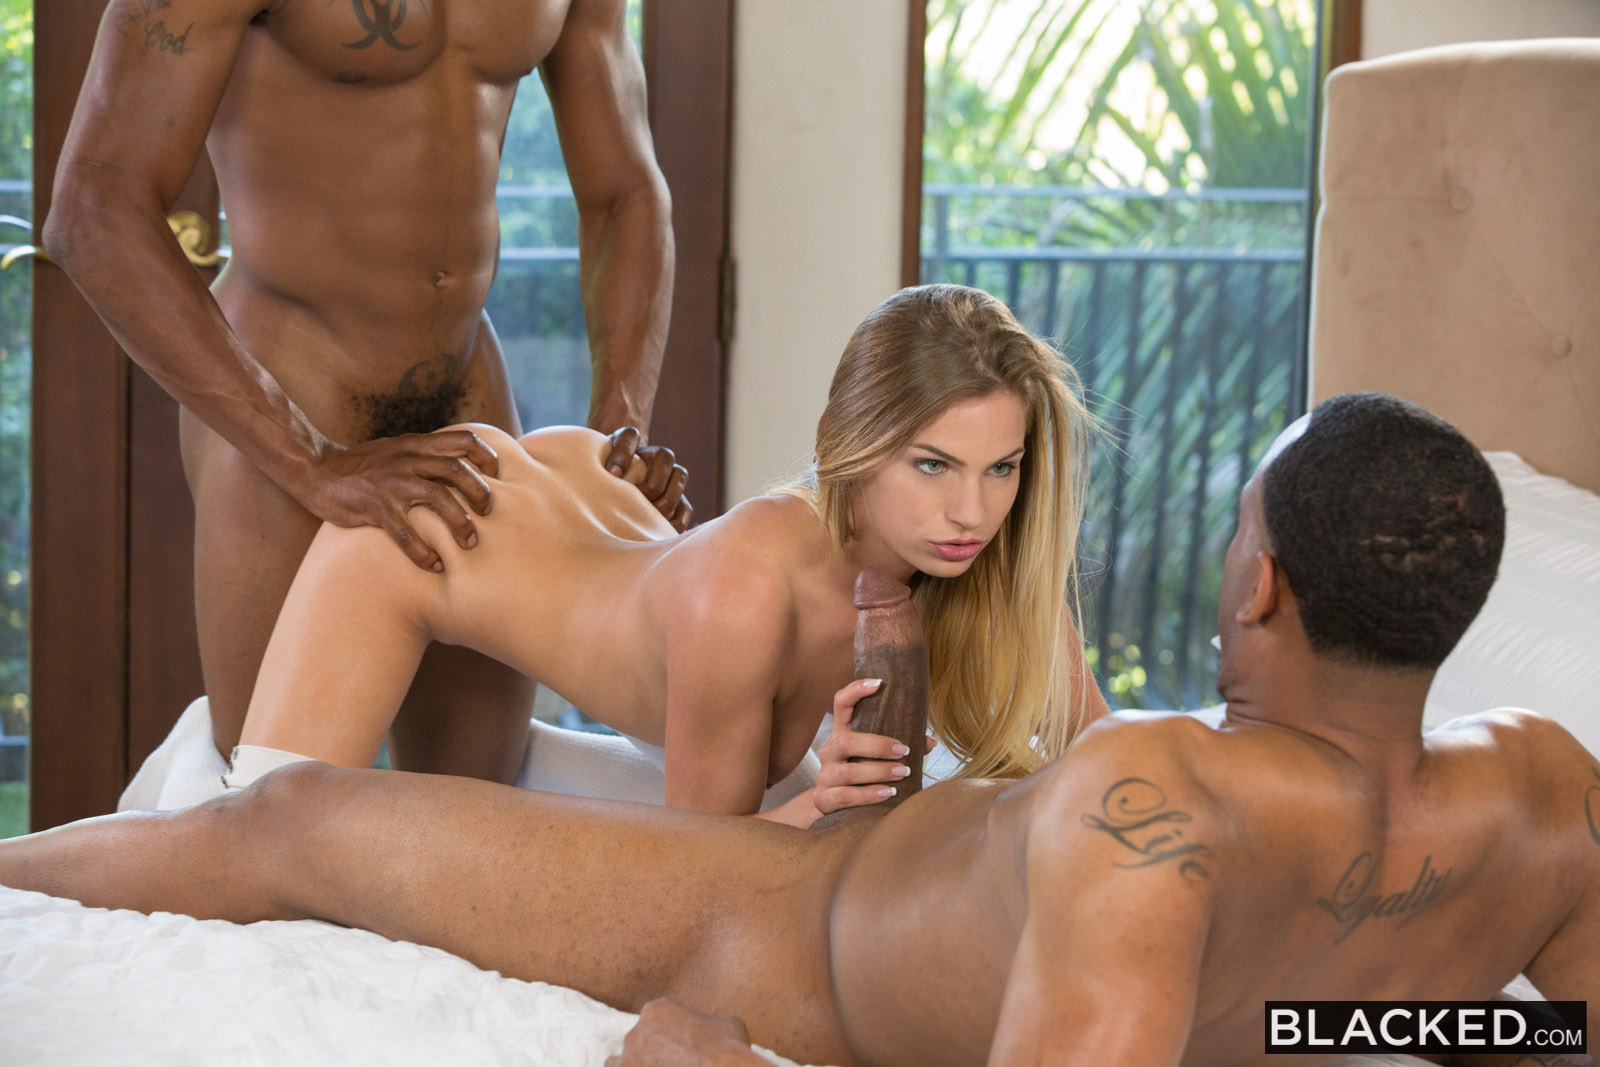 Three guys fuck some asian slut in all her holes 4